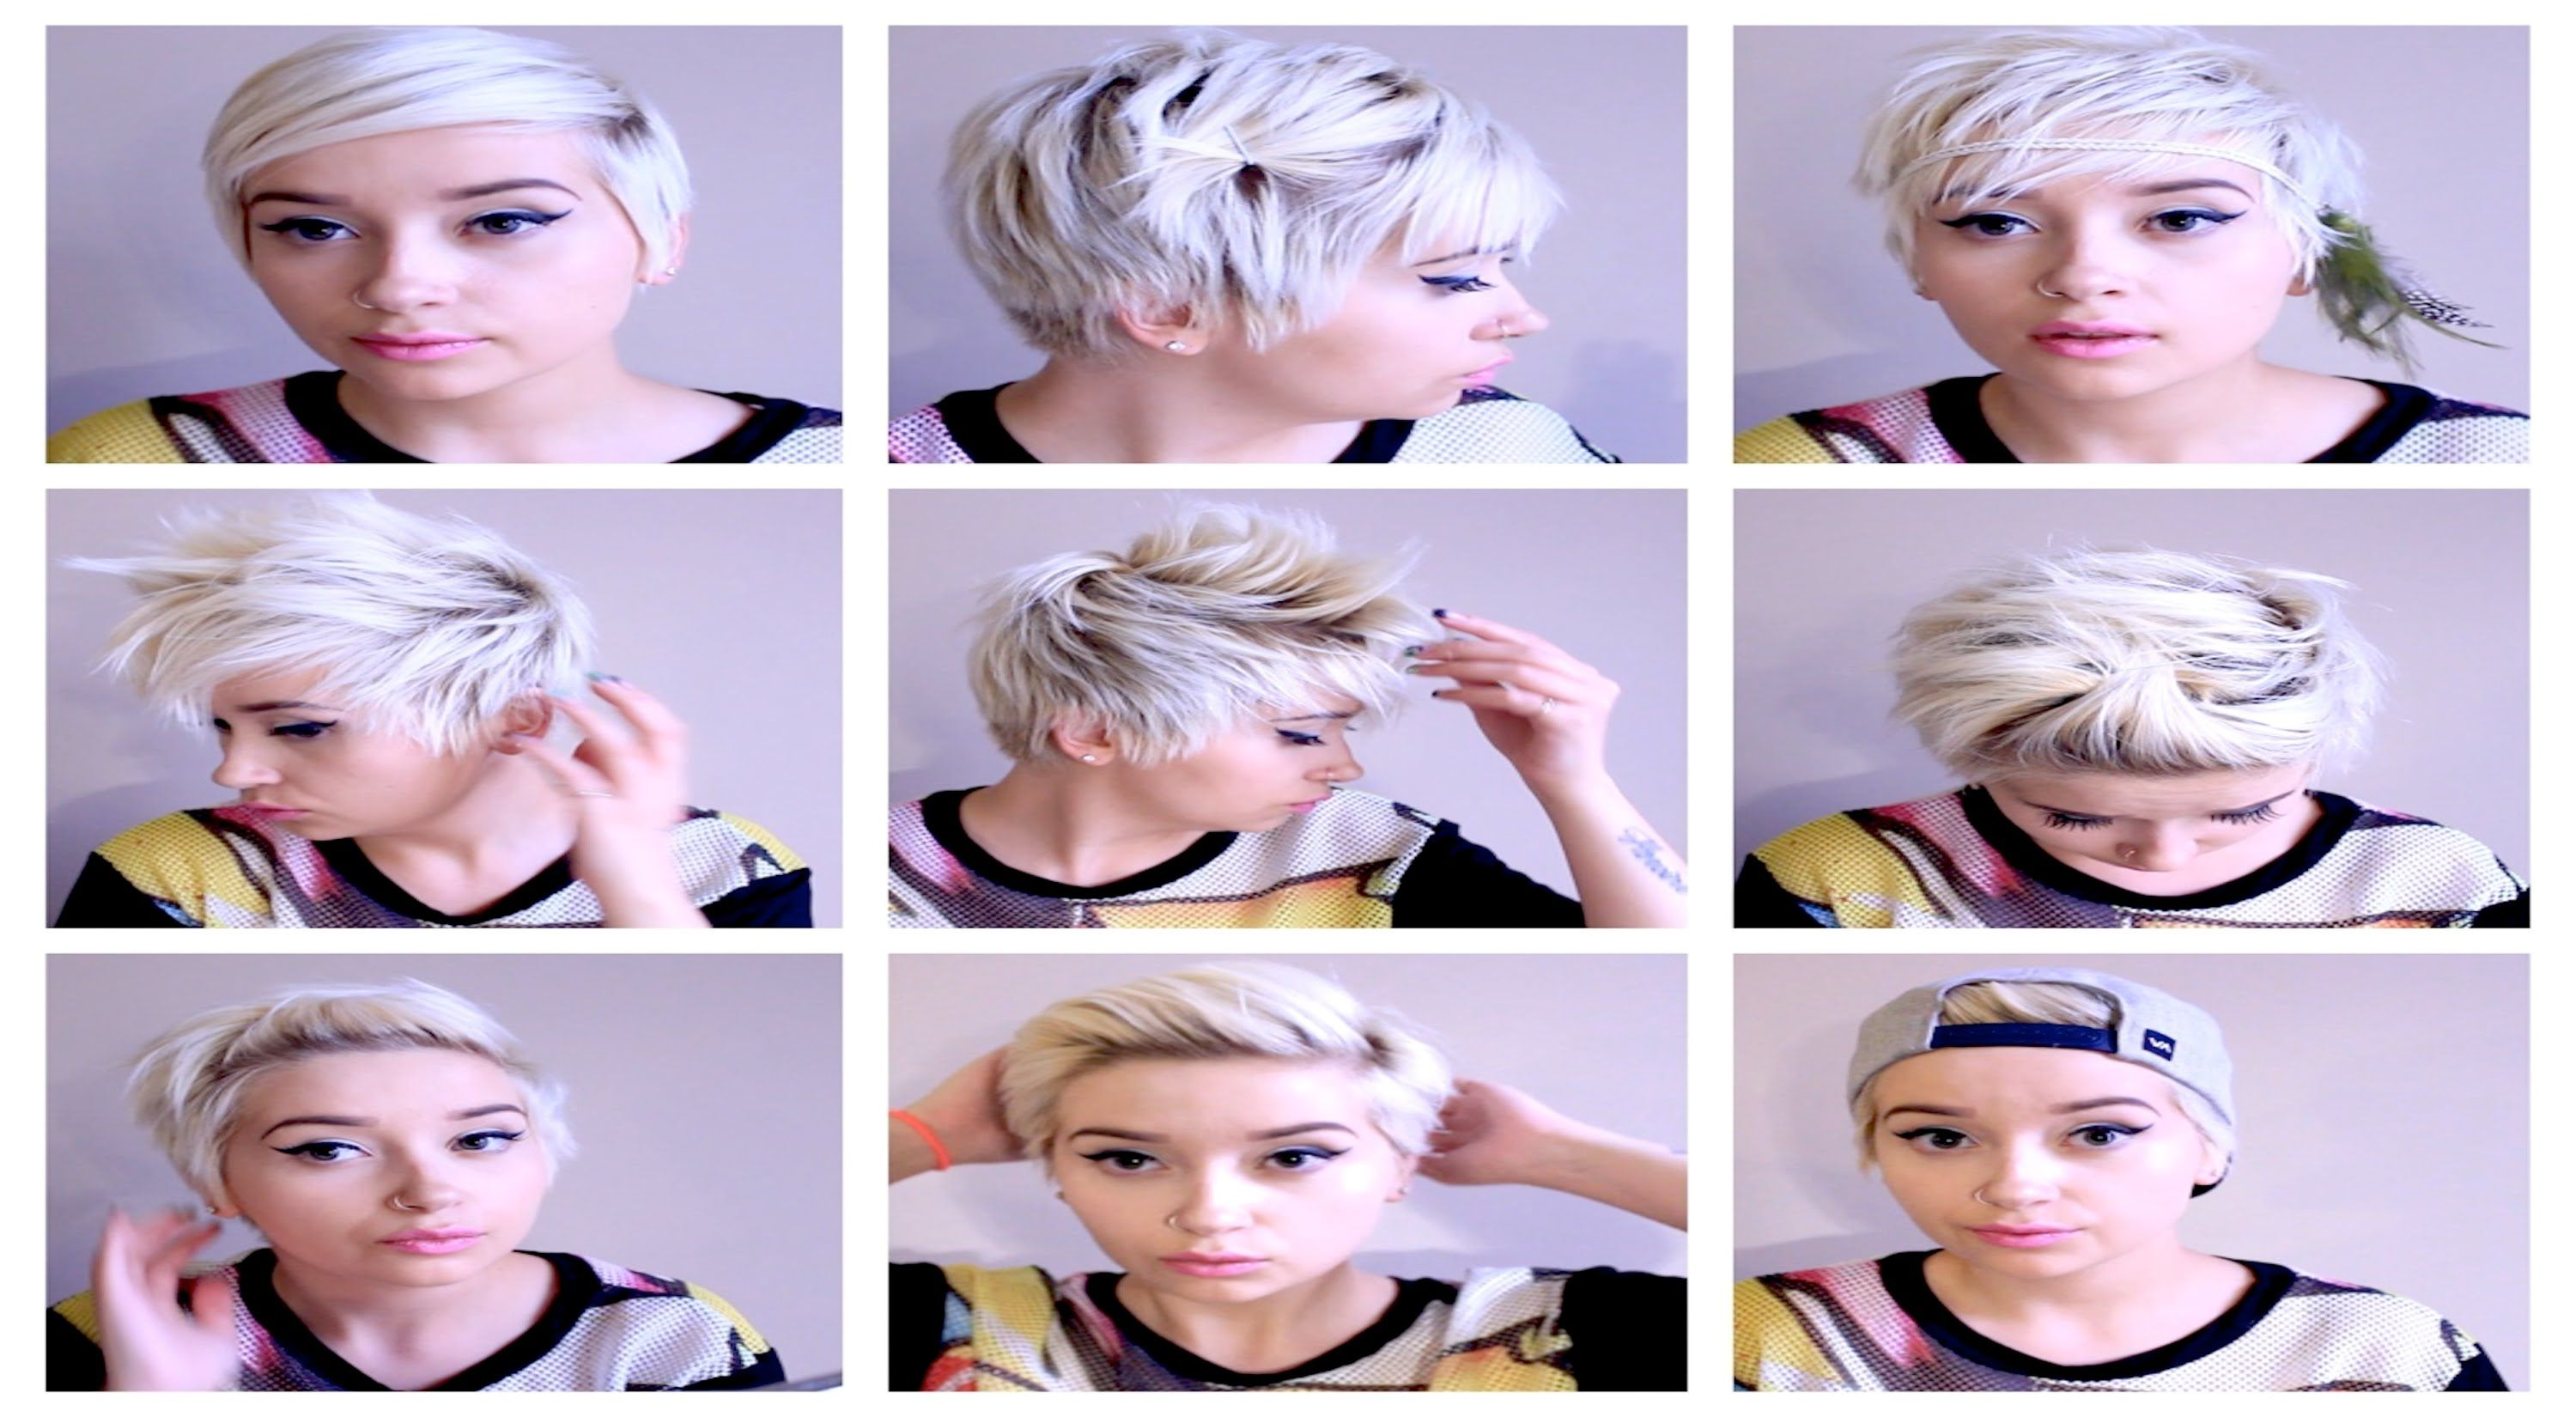 Seven No Heat Pixie Hairstyles Hair Tutorial Pt 3 Pixie Hairstyles Hair Tutorial Short Hair Styles Pixie